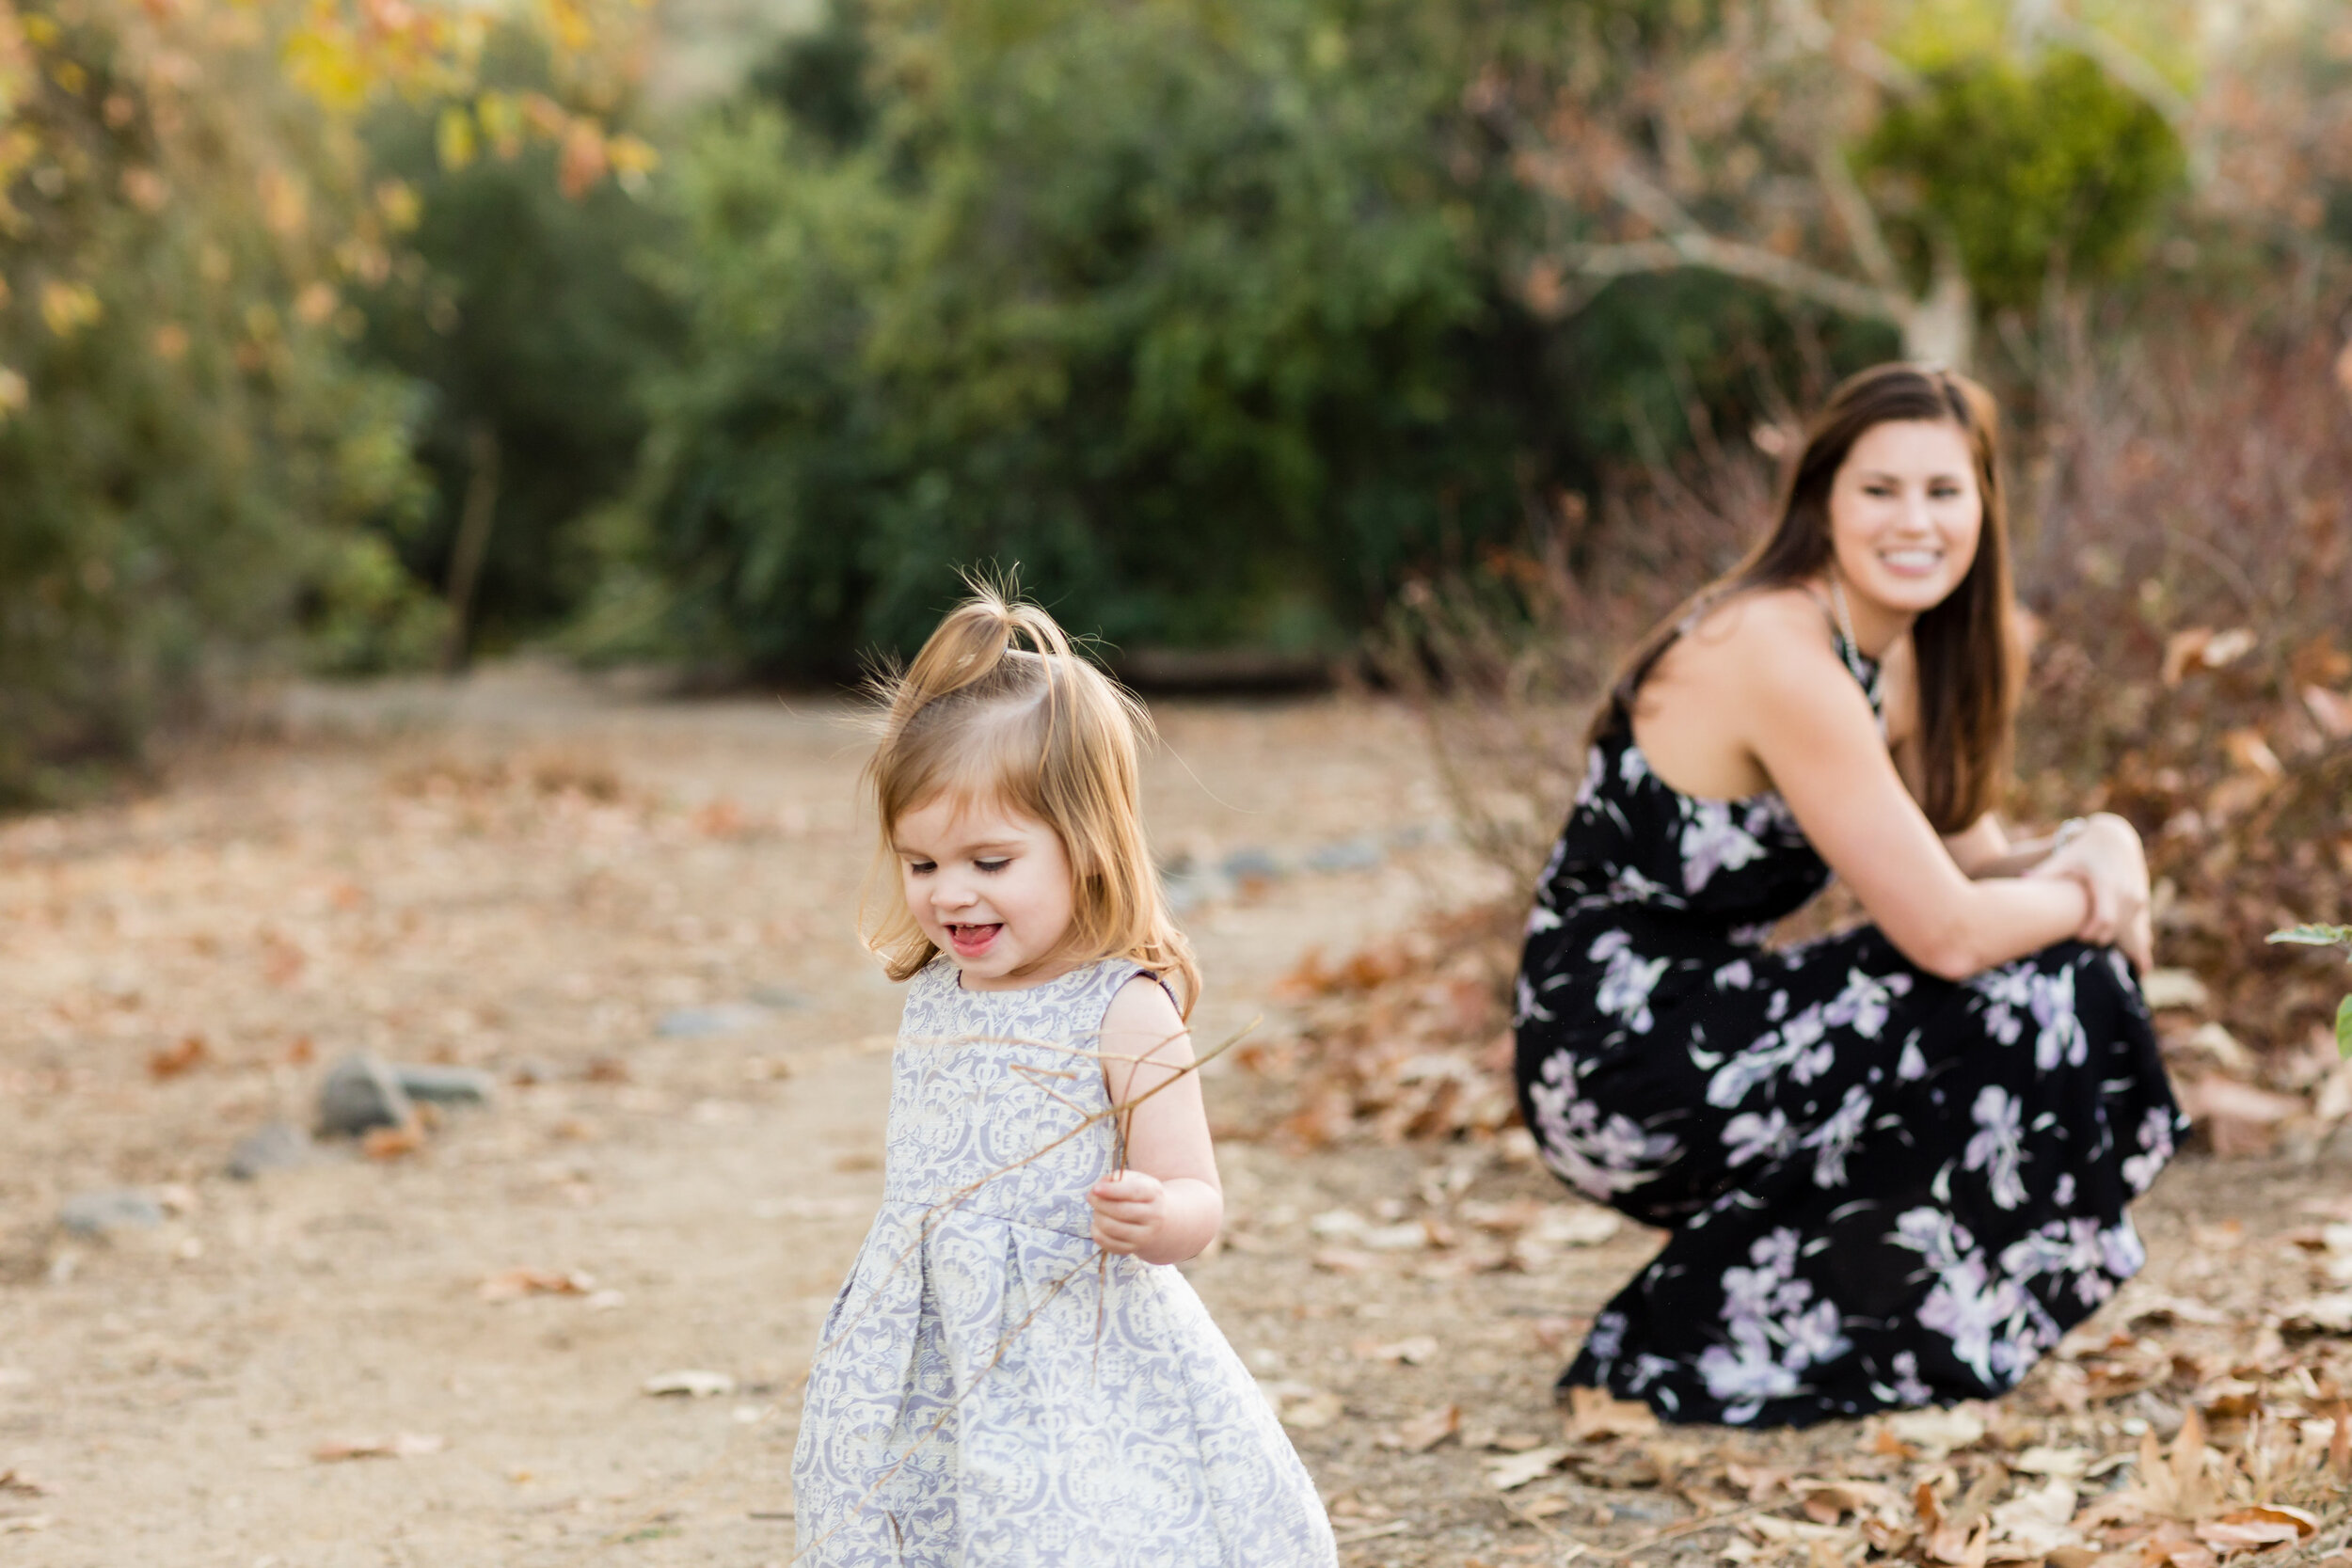 Daughter playing with leaves at Irvine Regional Park while Mother looks on.jpg